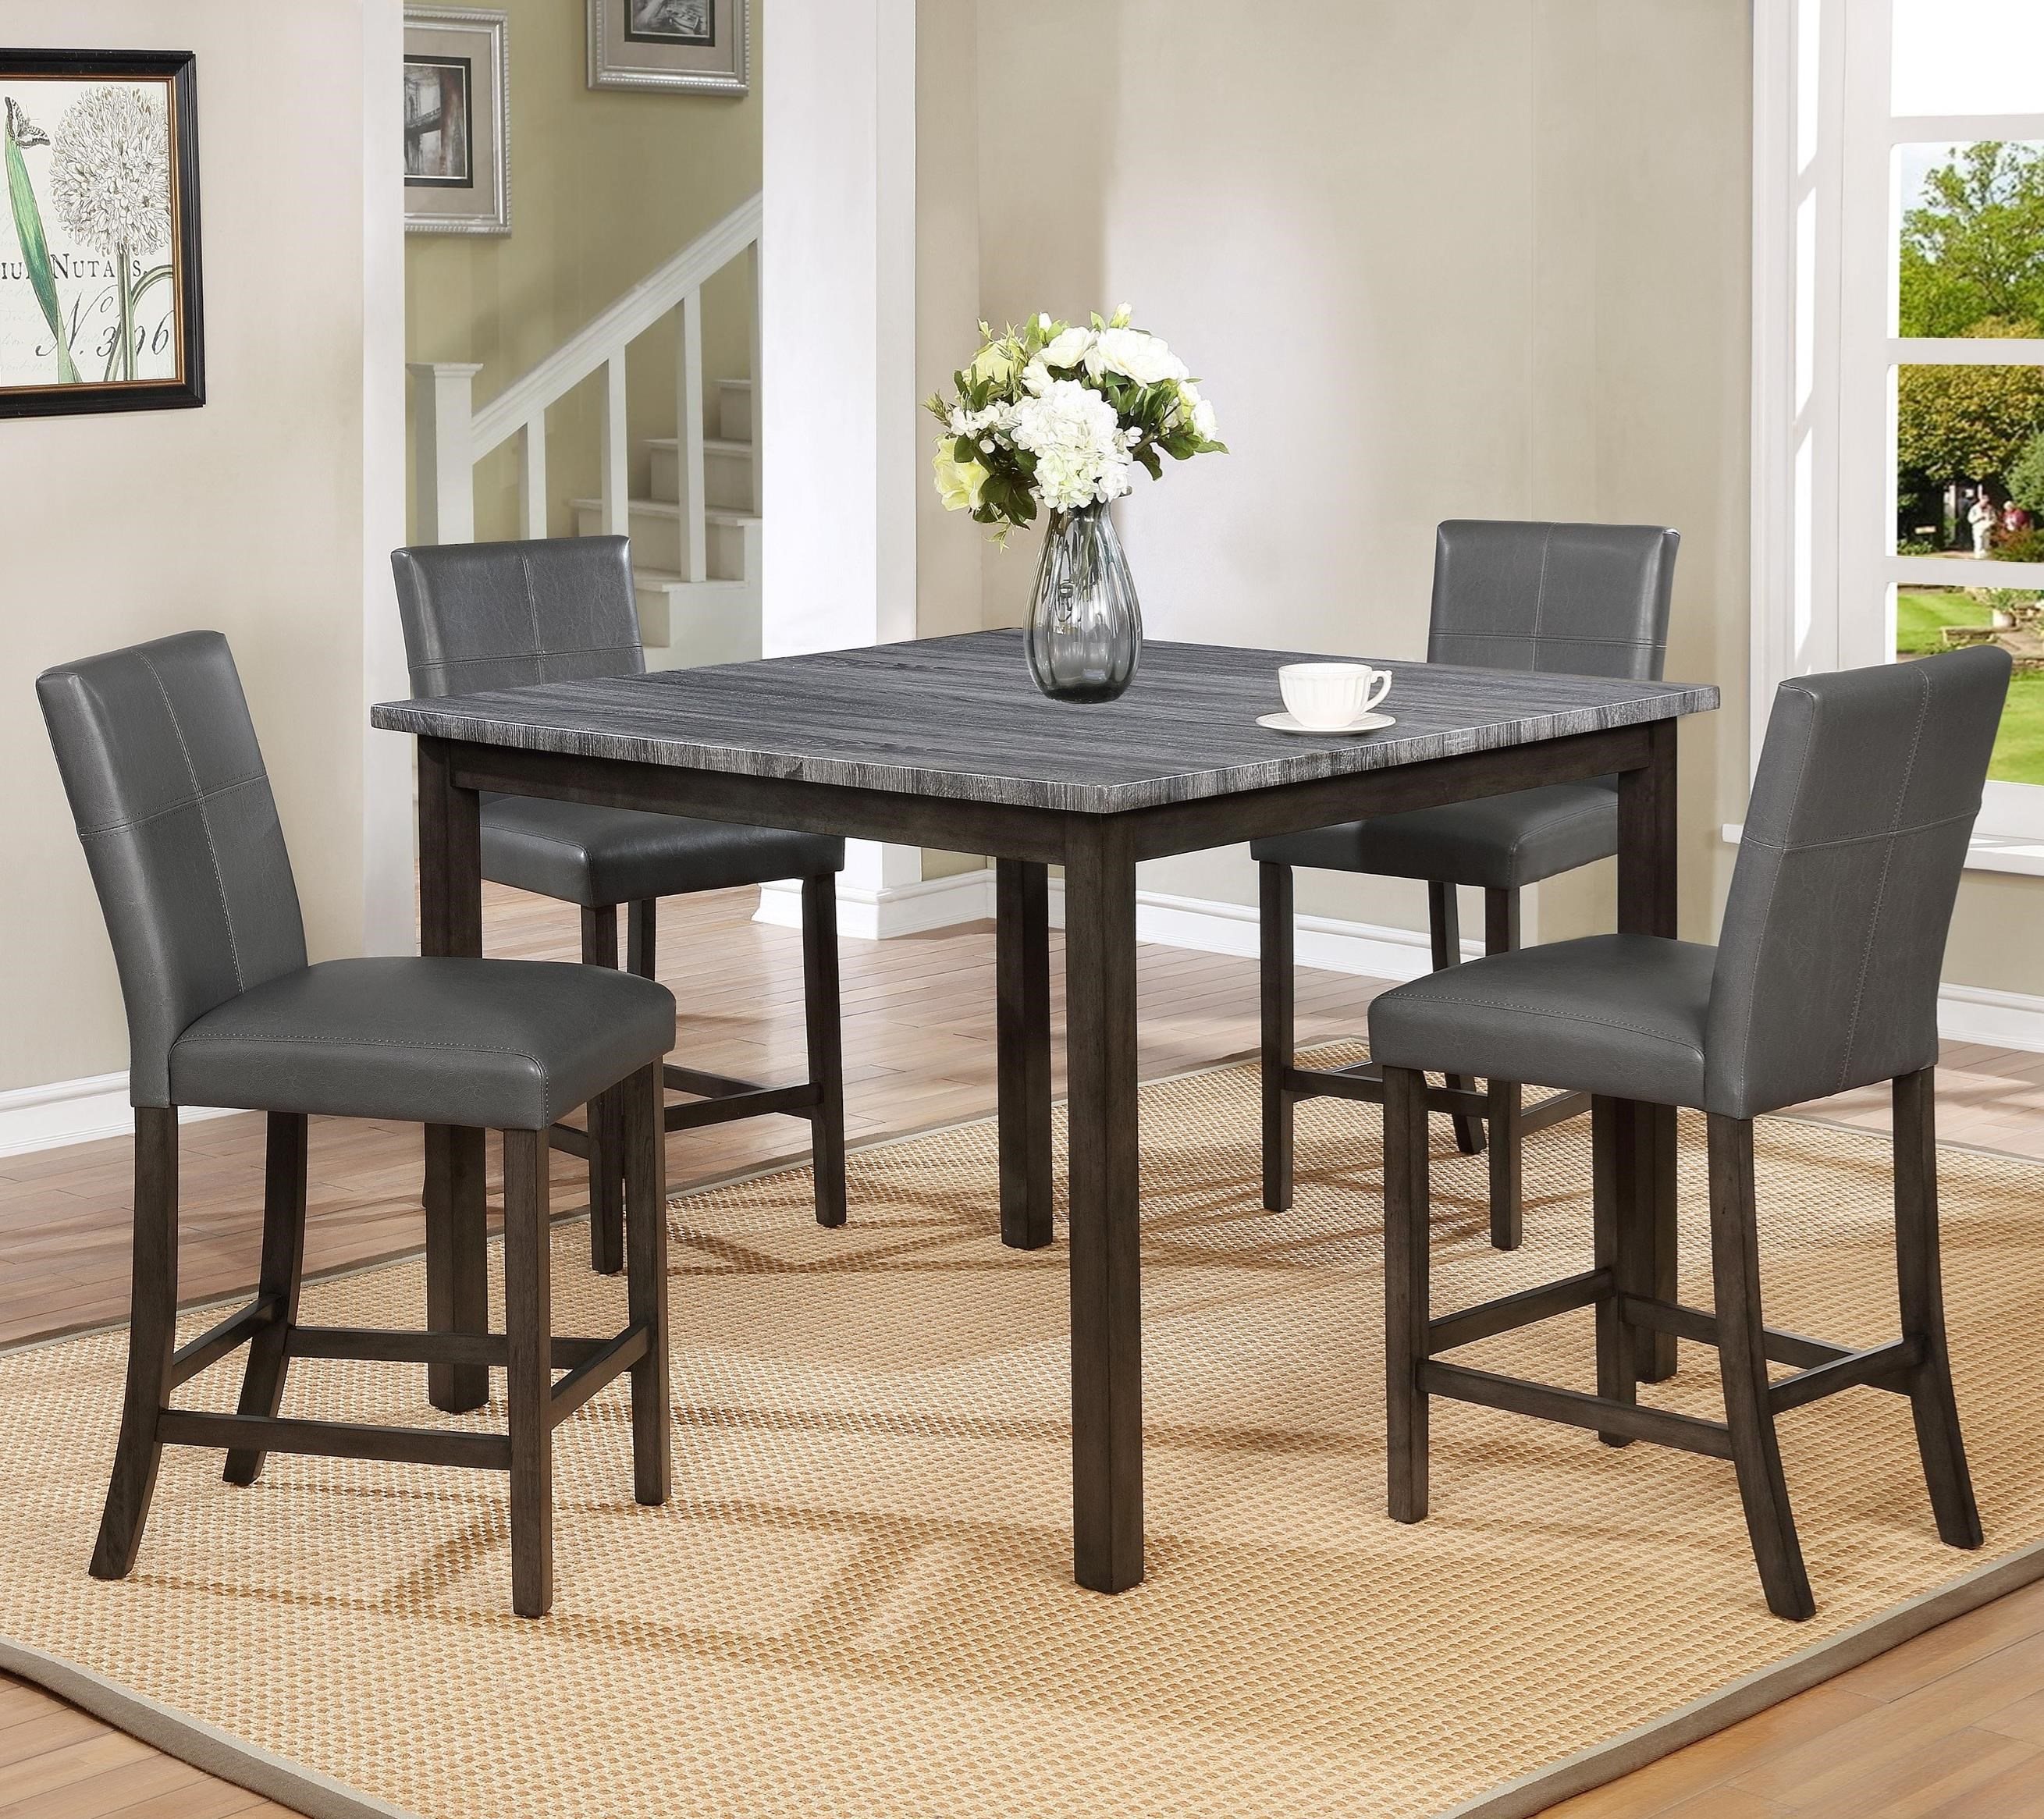 Pompei 5 Pc Counter Height Dining Set by Crown Mark at Northeast Factory Direct